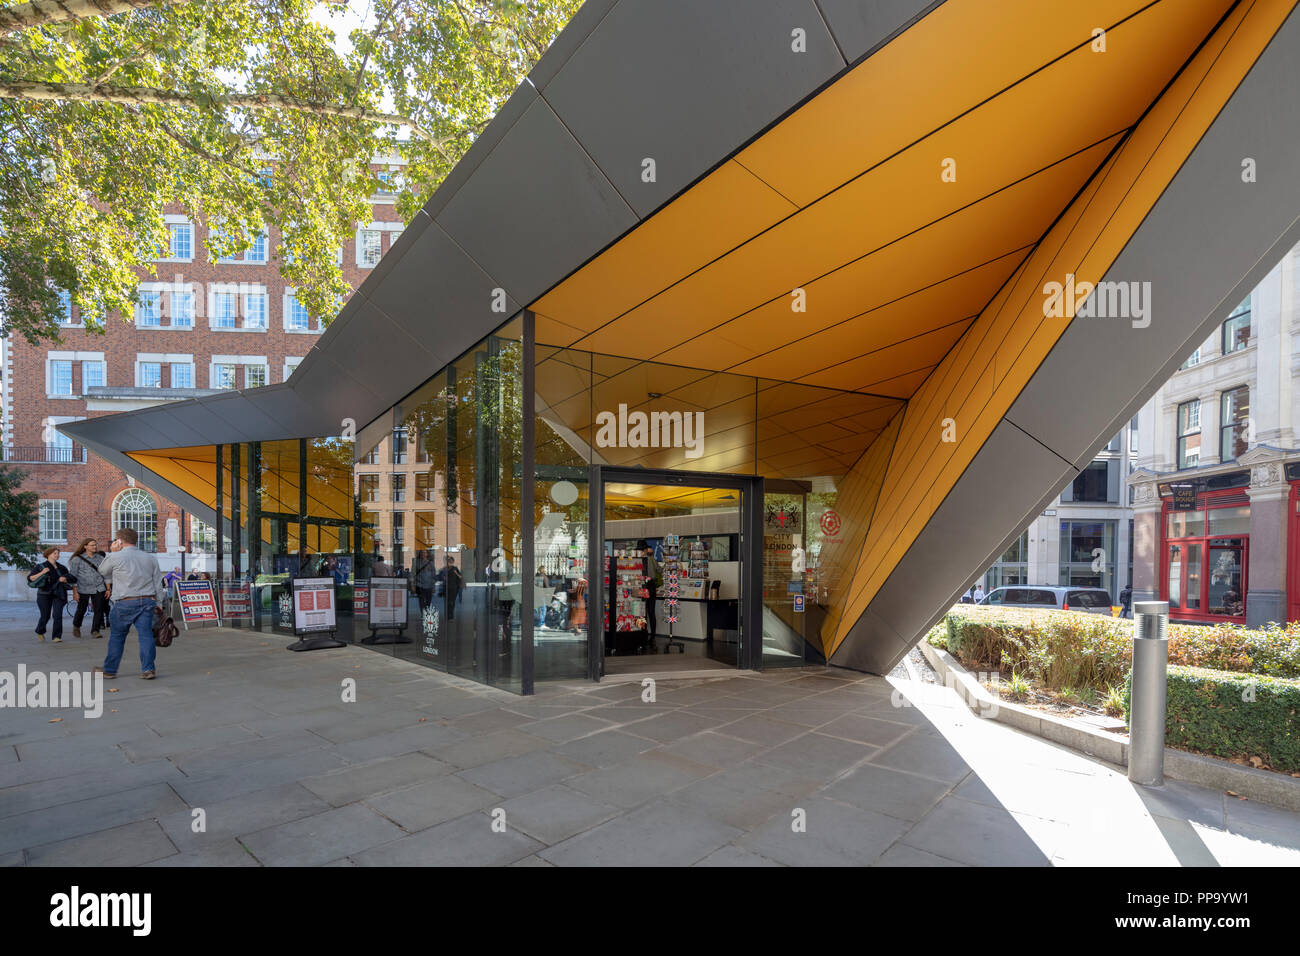 The City Information Centre, the only officially recognised Tourist Information Centre in central London, England, UK - Stock Image